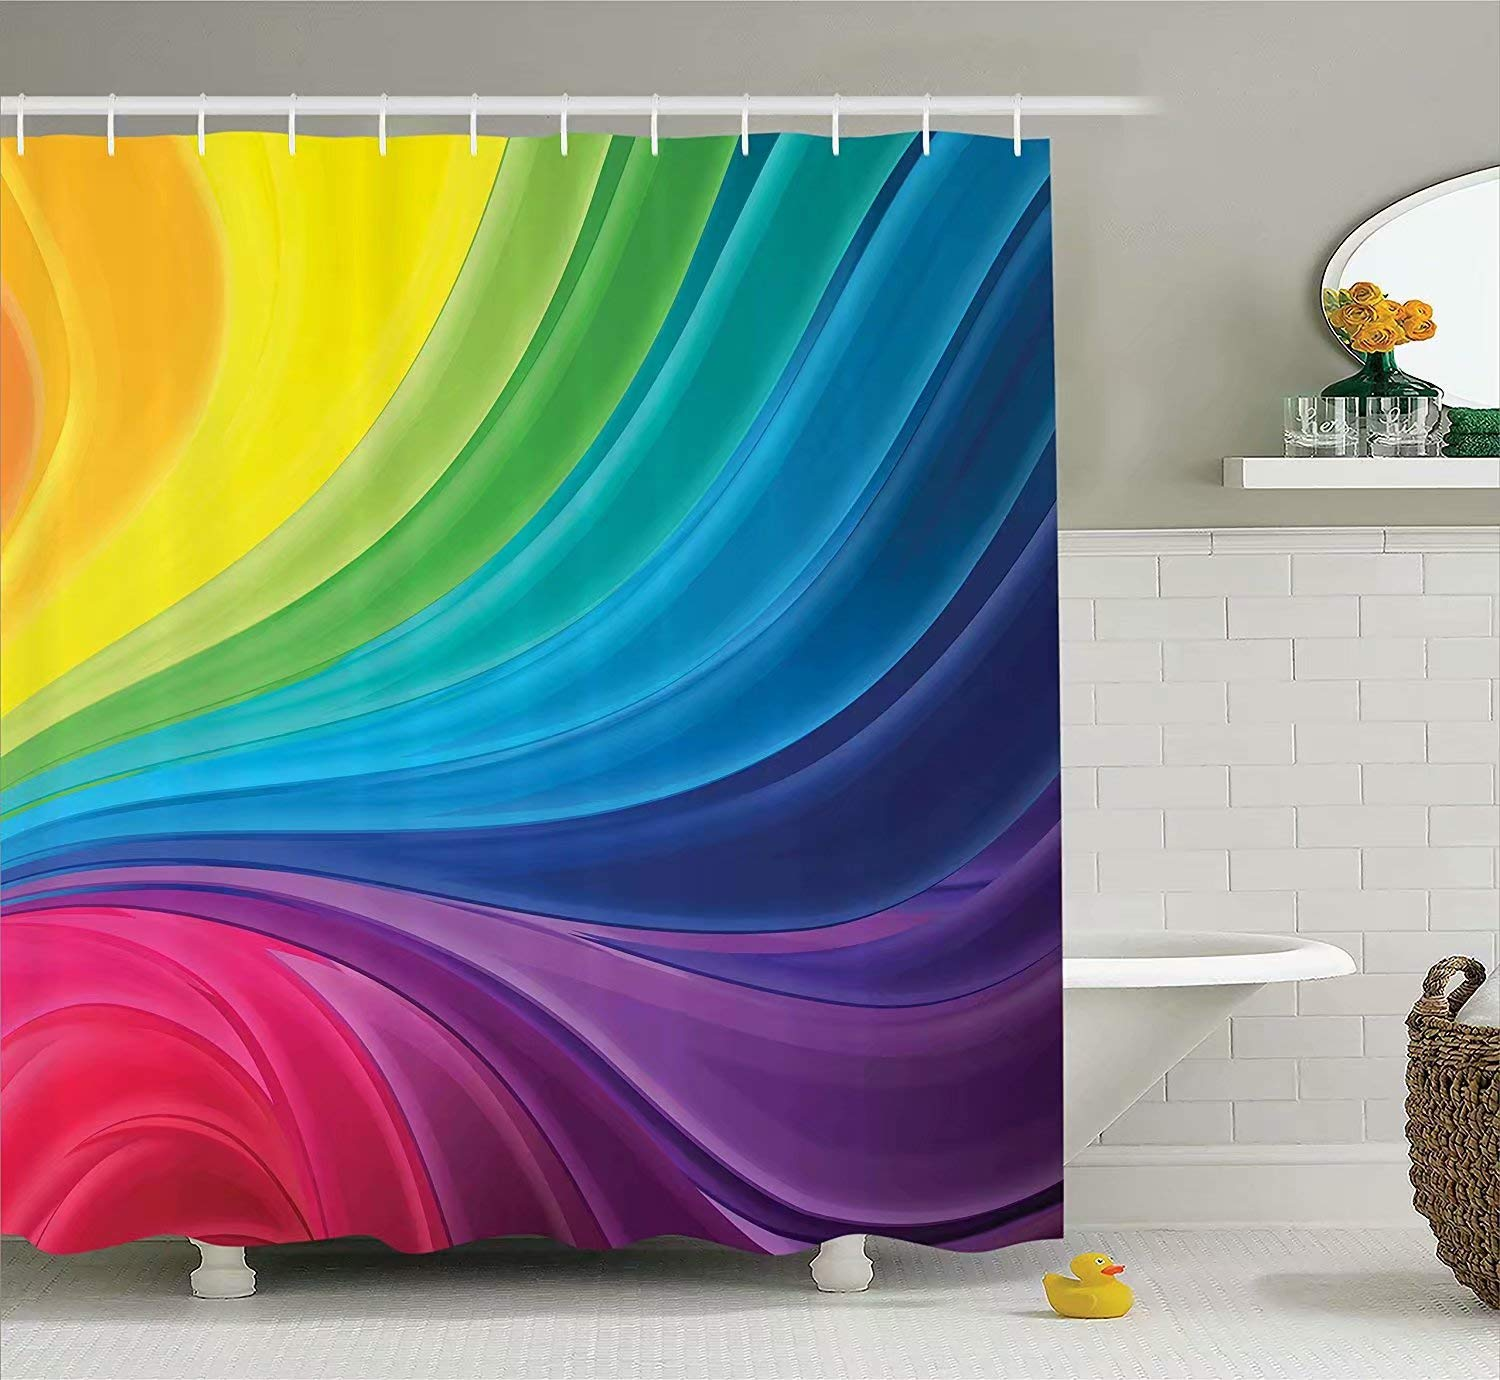 KANATSIU Abstract Smooth Rainbow Curvy Lines Pattern Spiral Wavy Light Spray Art Shower Curtain,with 12 Plactic Hooks,100% Made of Polyester,Mildew Resistant & Machine Washable,Width x Height is 60x72